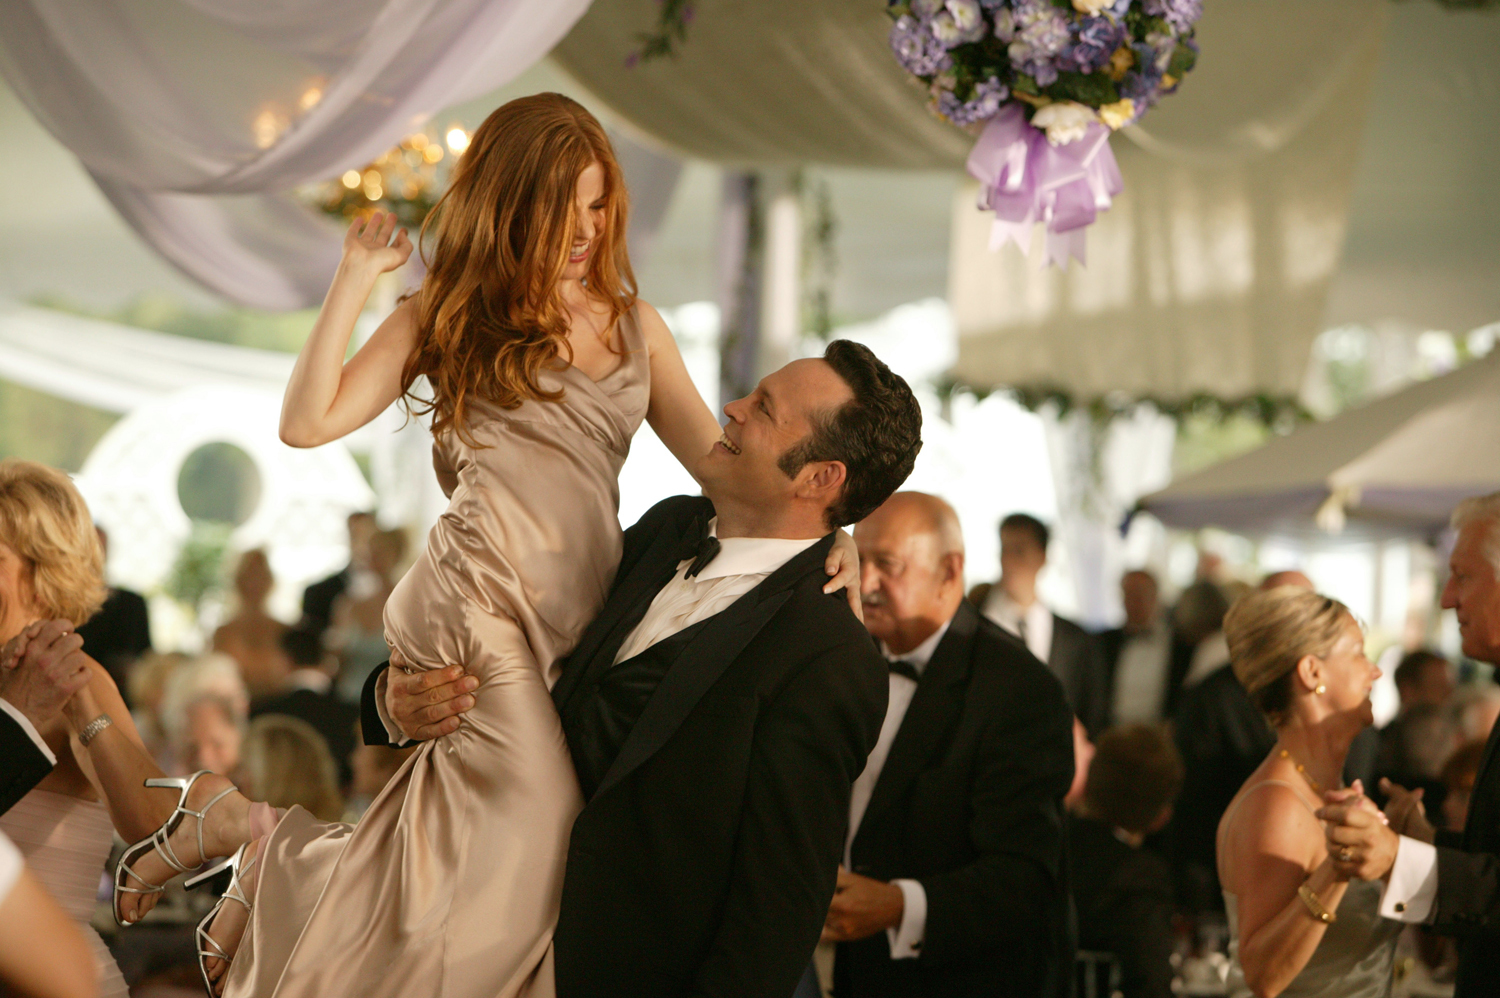 Vince Vaughn and Isla Fisher in Wedding Crashers (2005)